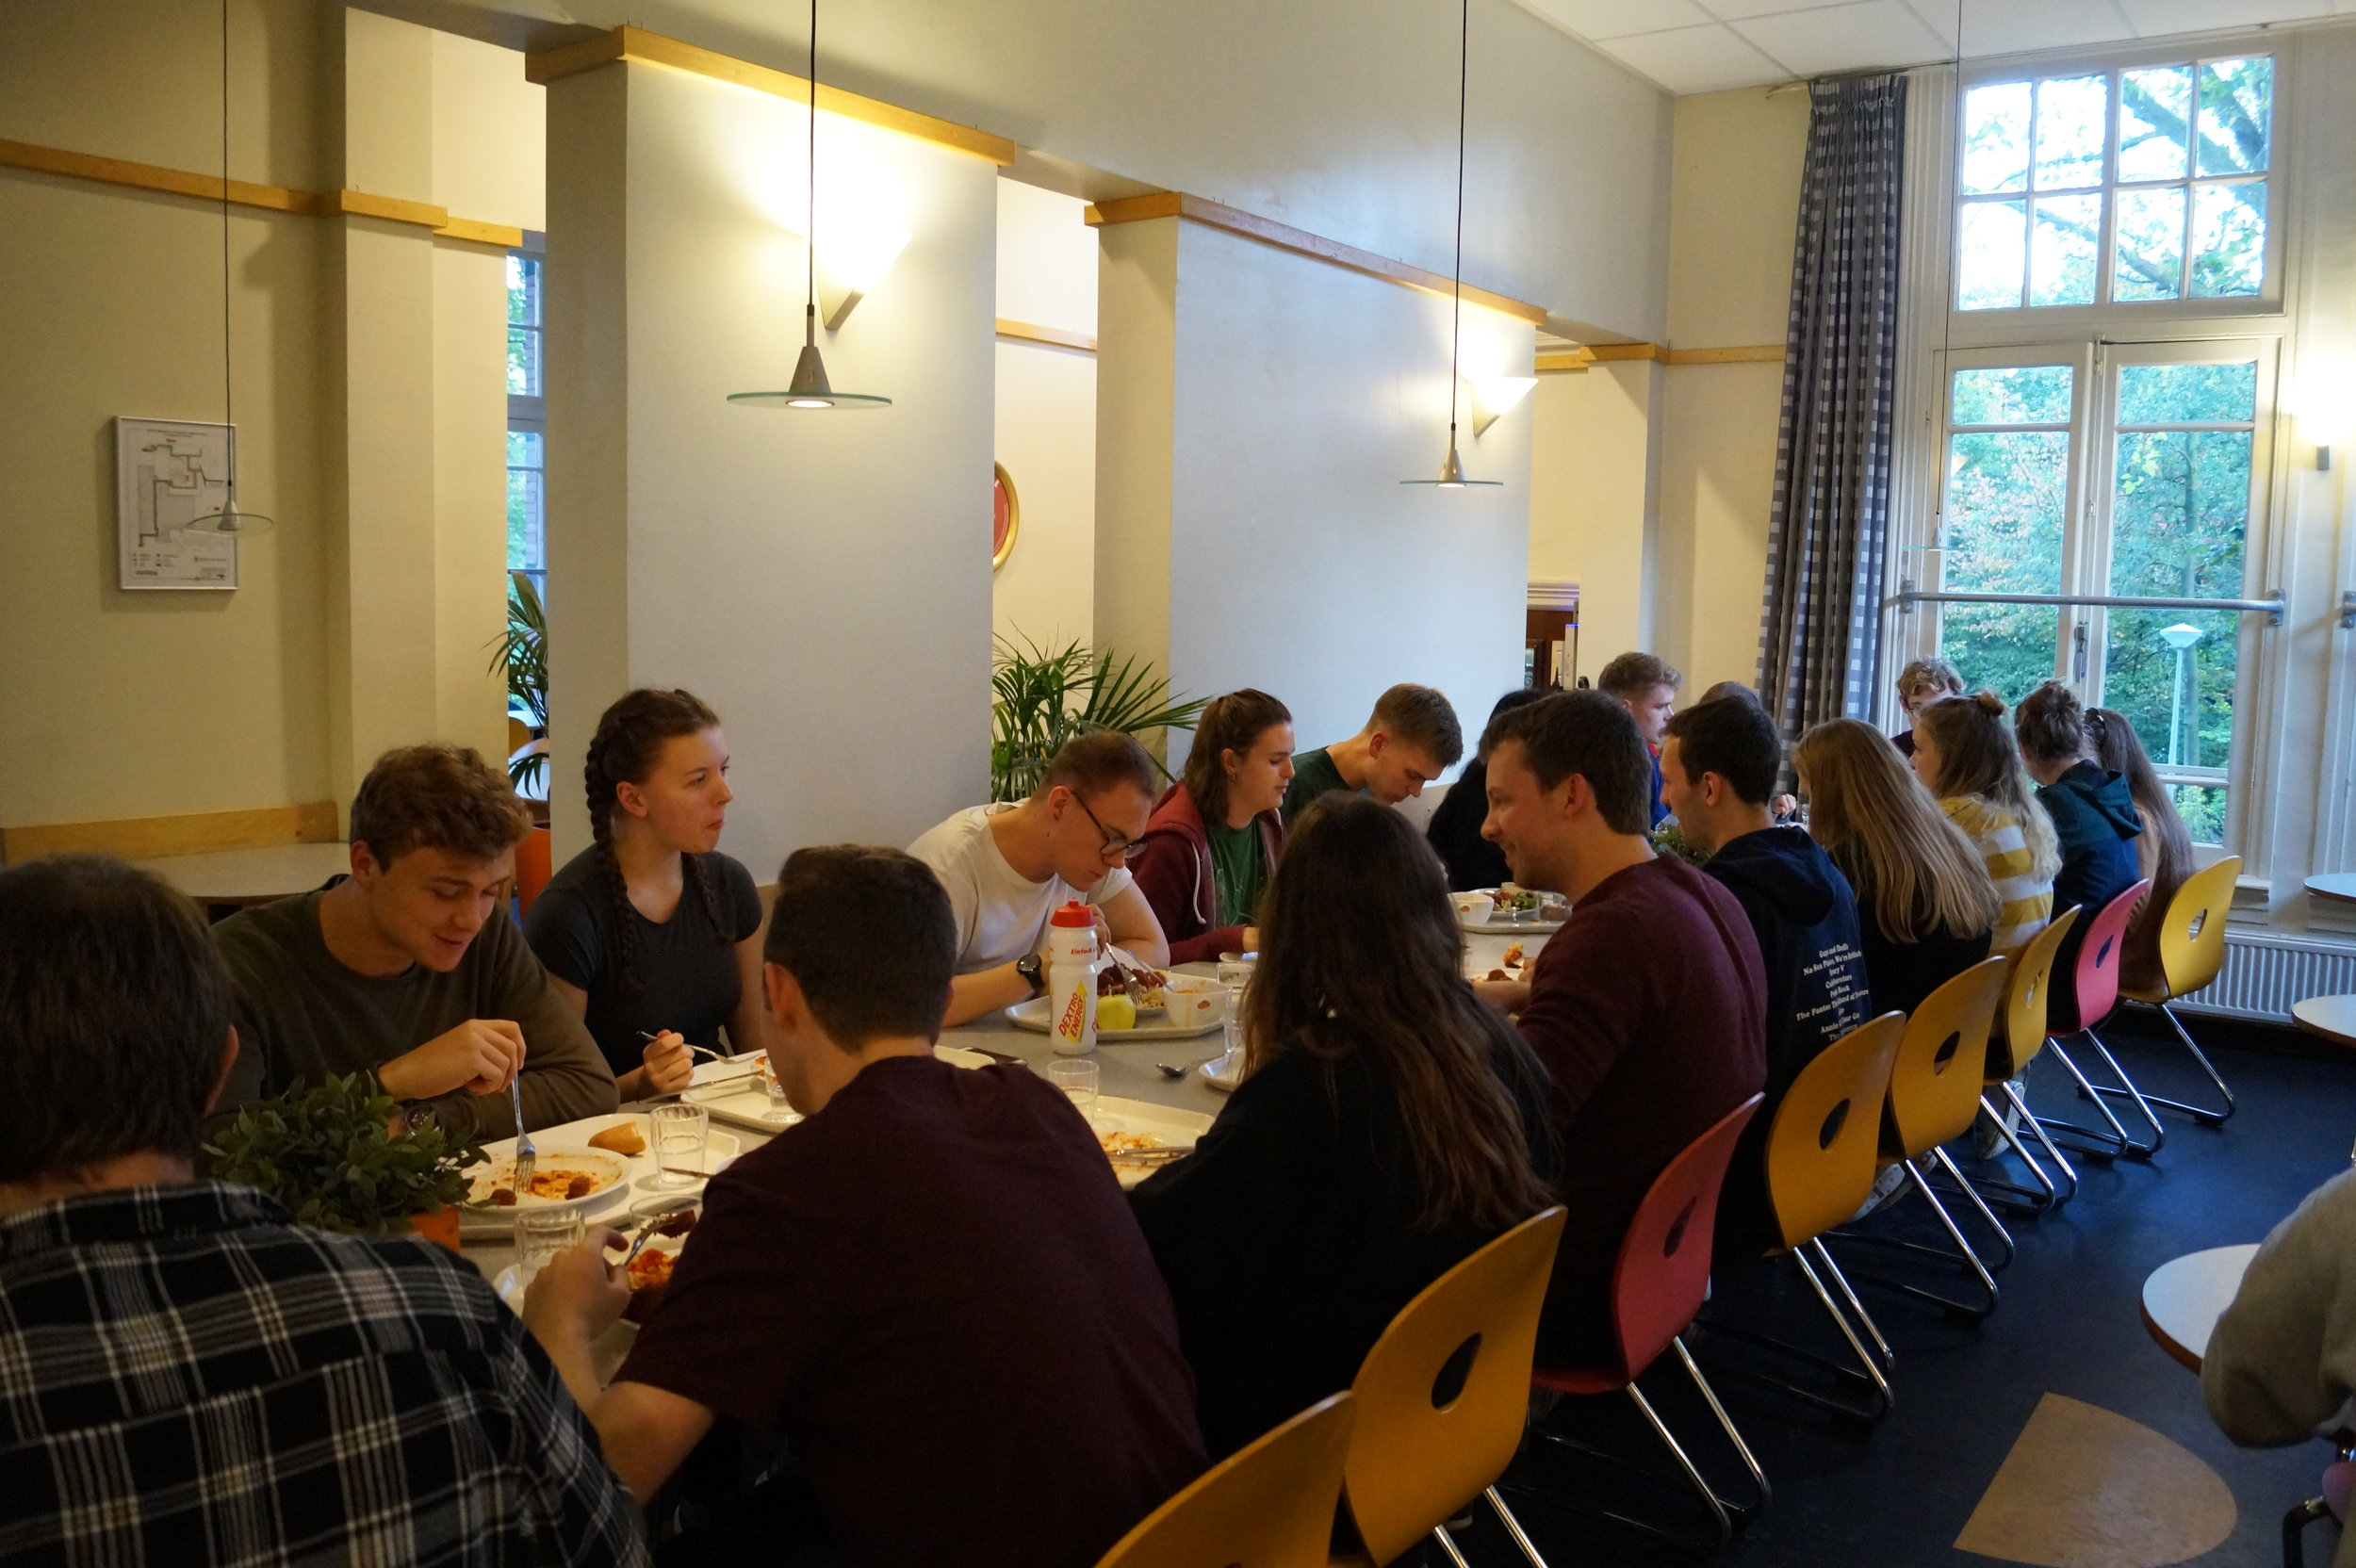 The team tuck in to their carb-loading meal on Saturday evening.